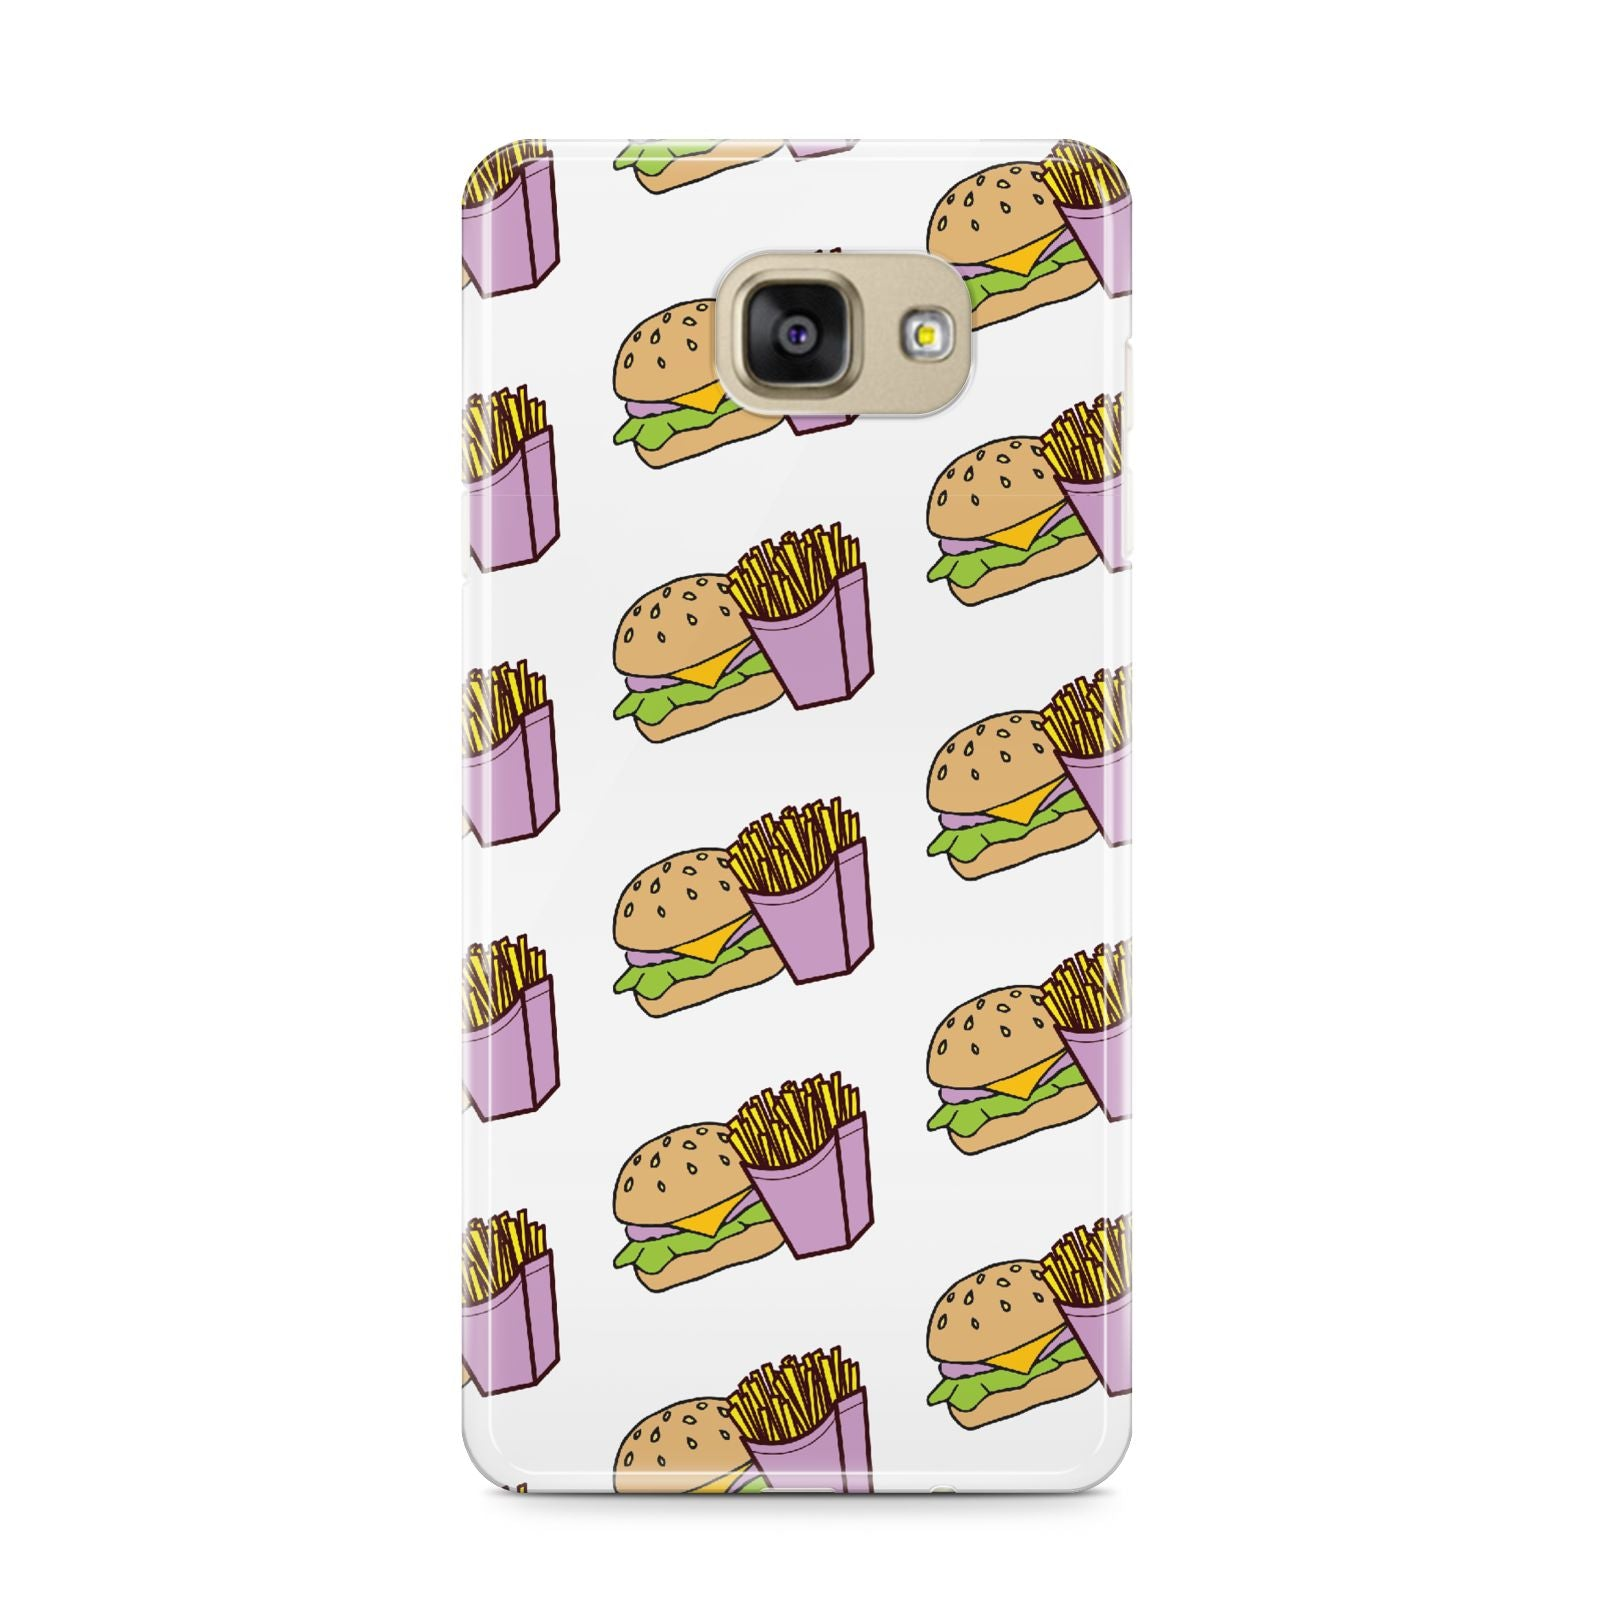 Burger Fries Fast Food Samsung Galaxy A9 2016 Case on gold phone